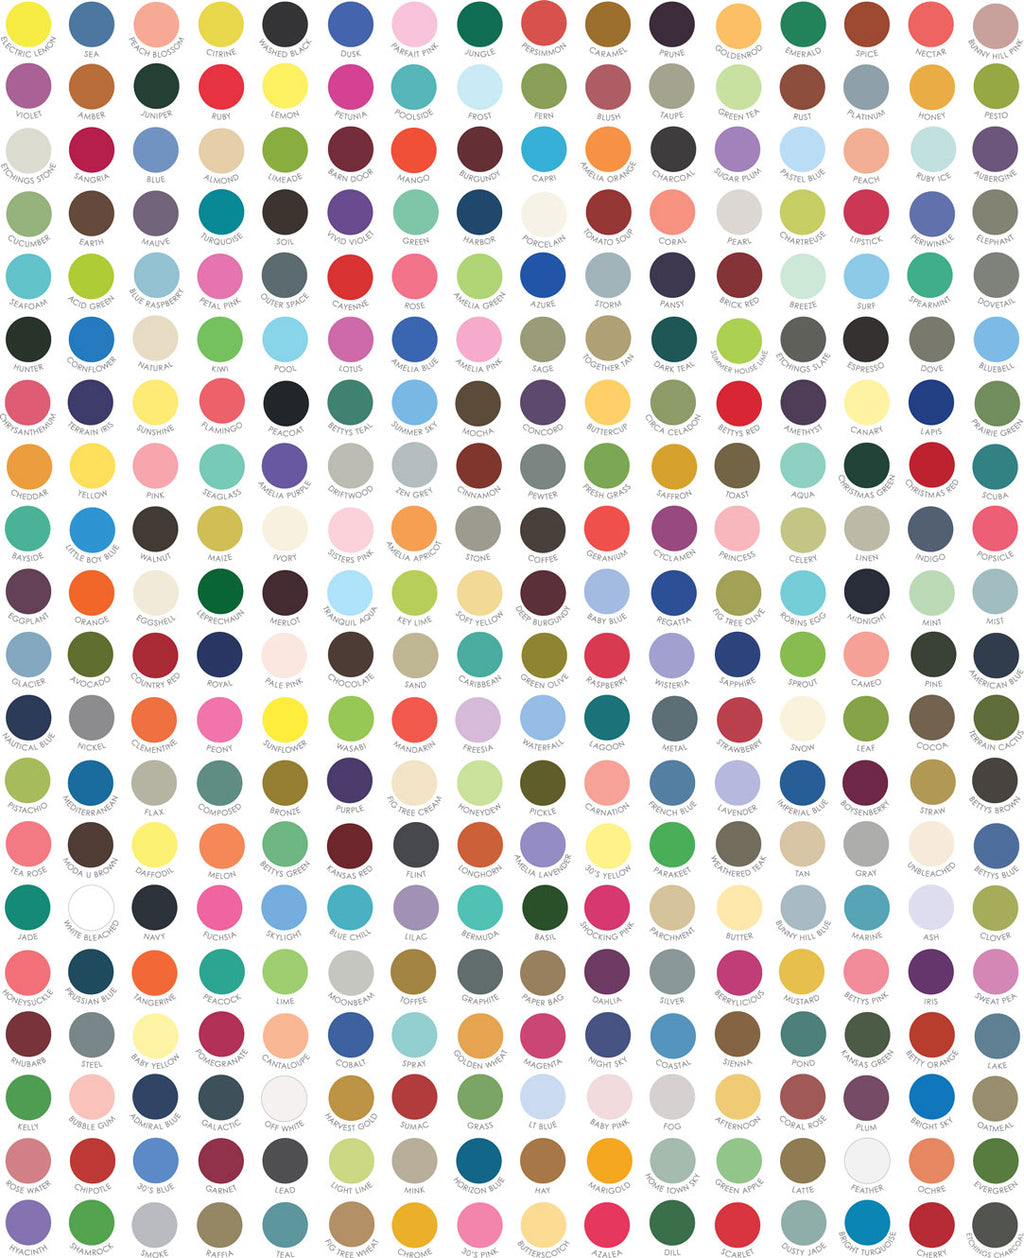 My Favorite Color Is Moda Quilt Fabric - Swatch Dots in Multi - 9900 10